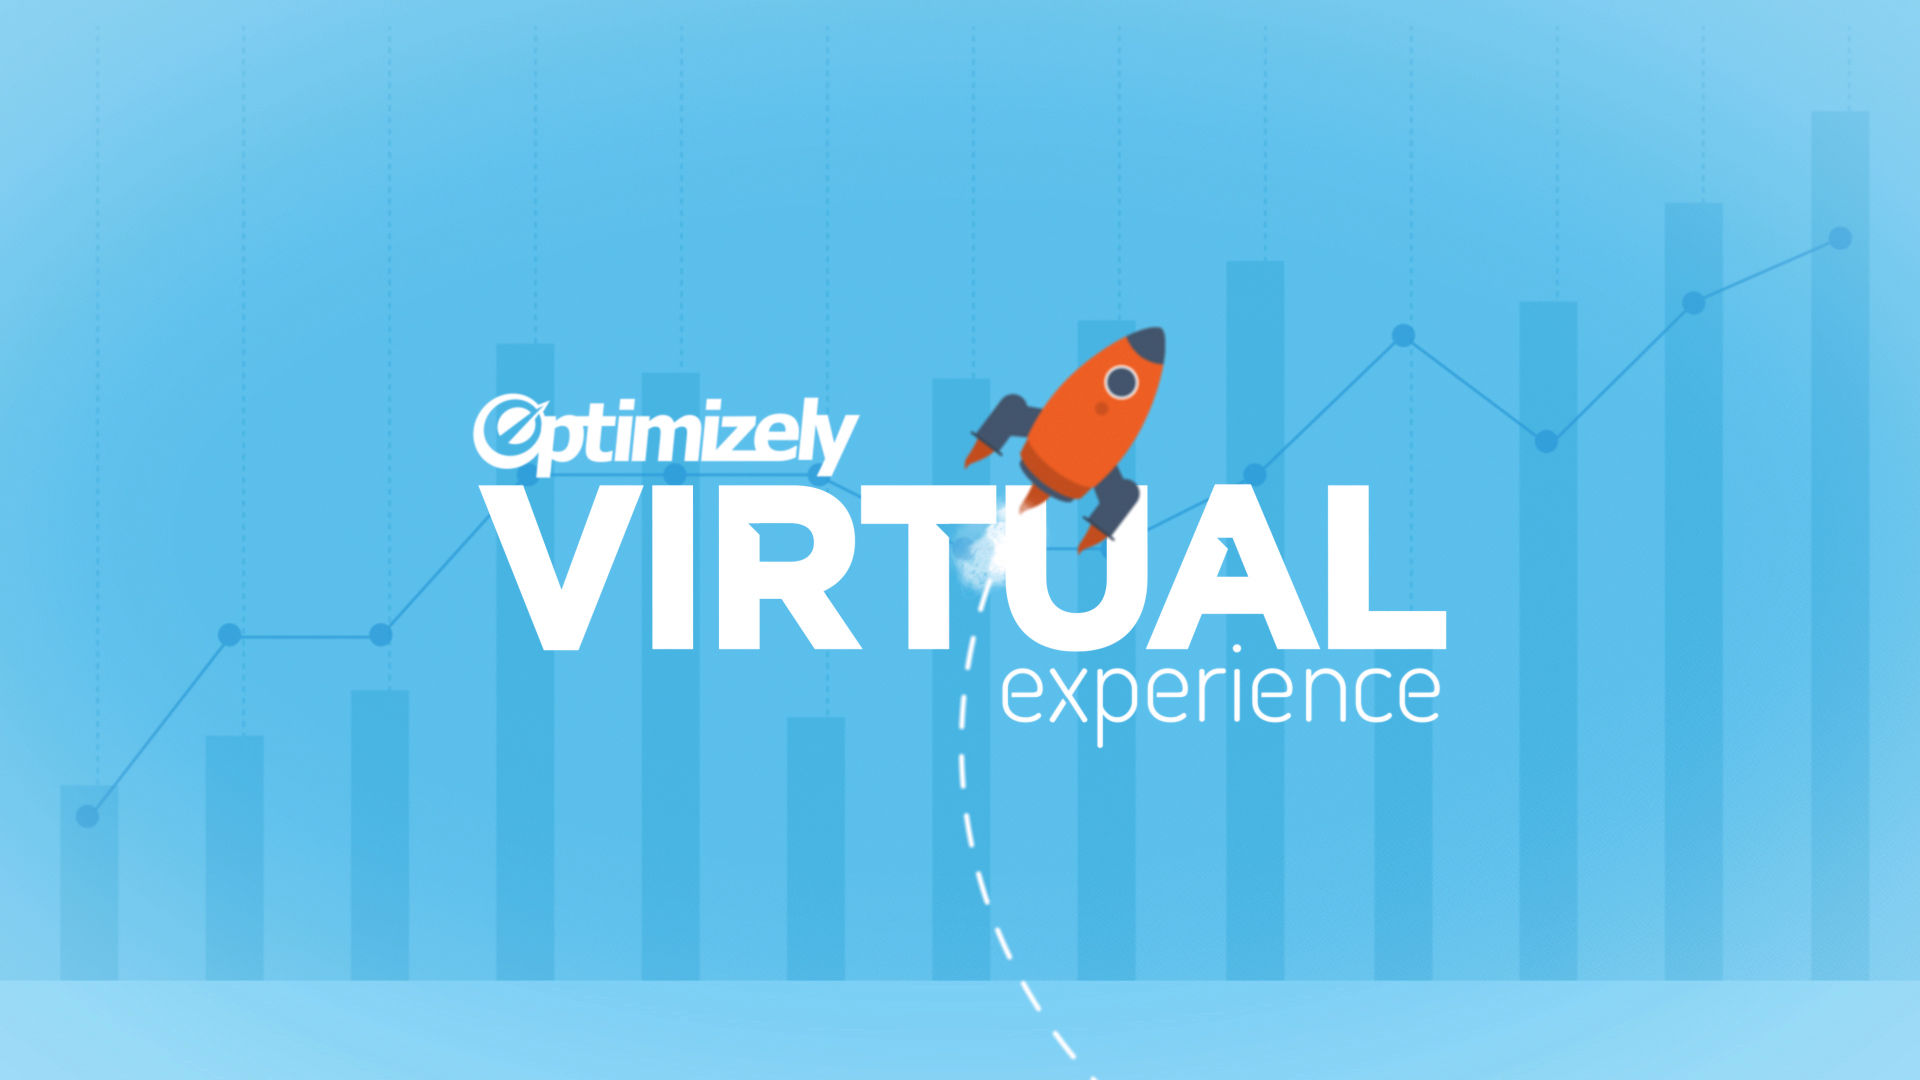 Optimizely: Virtual Experience